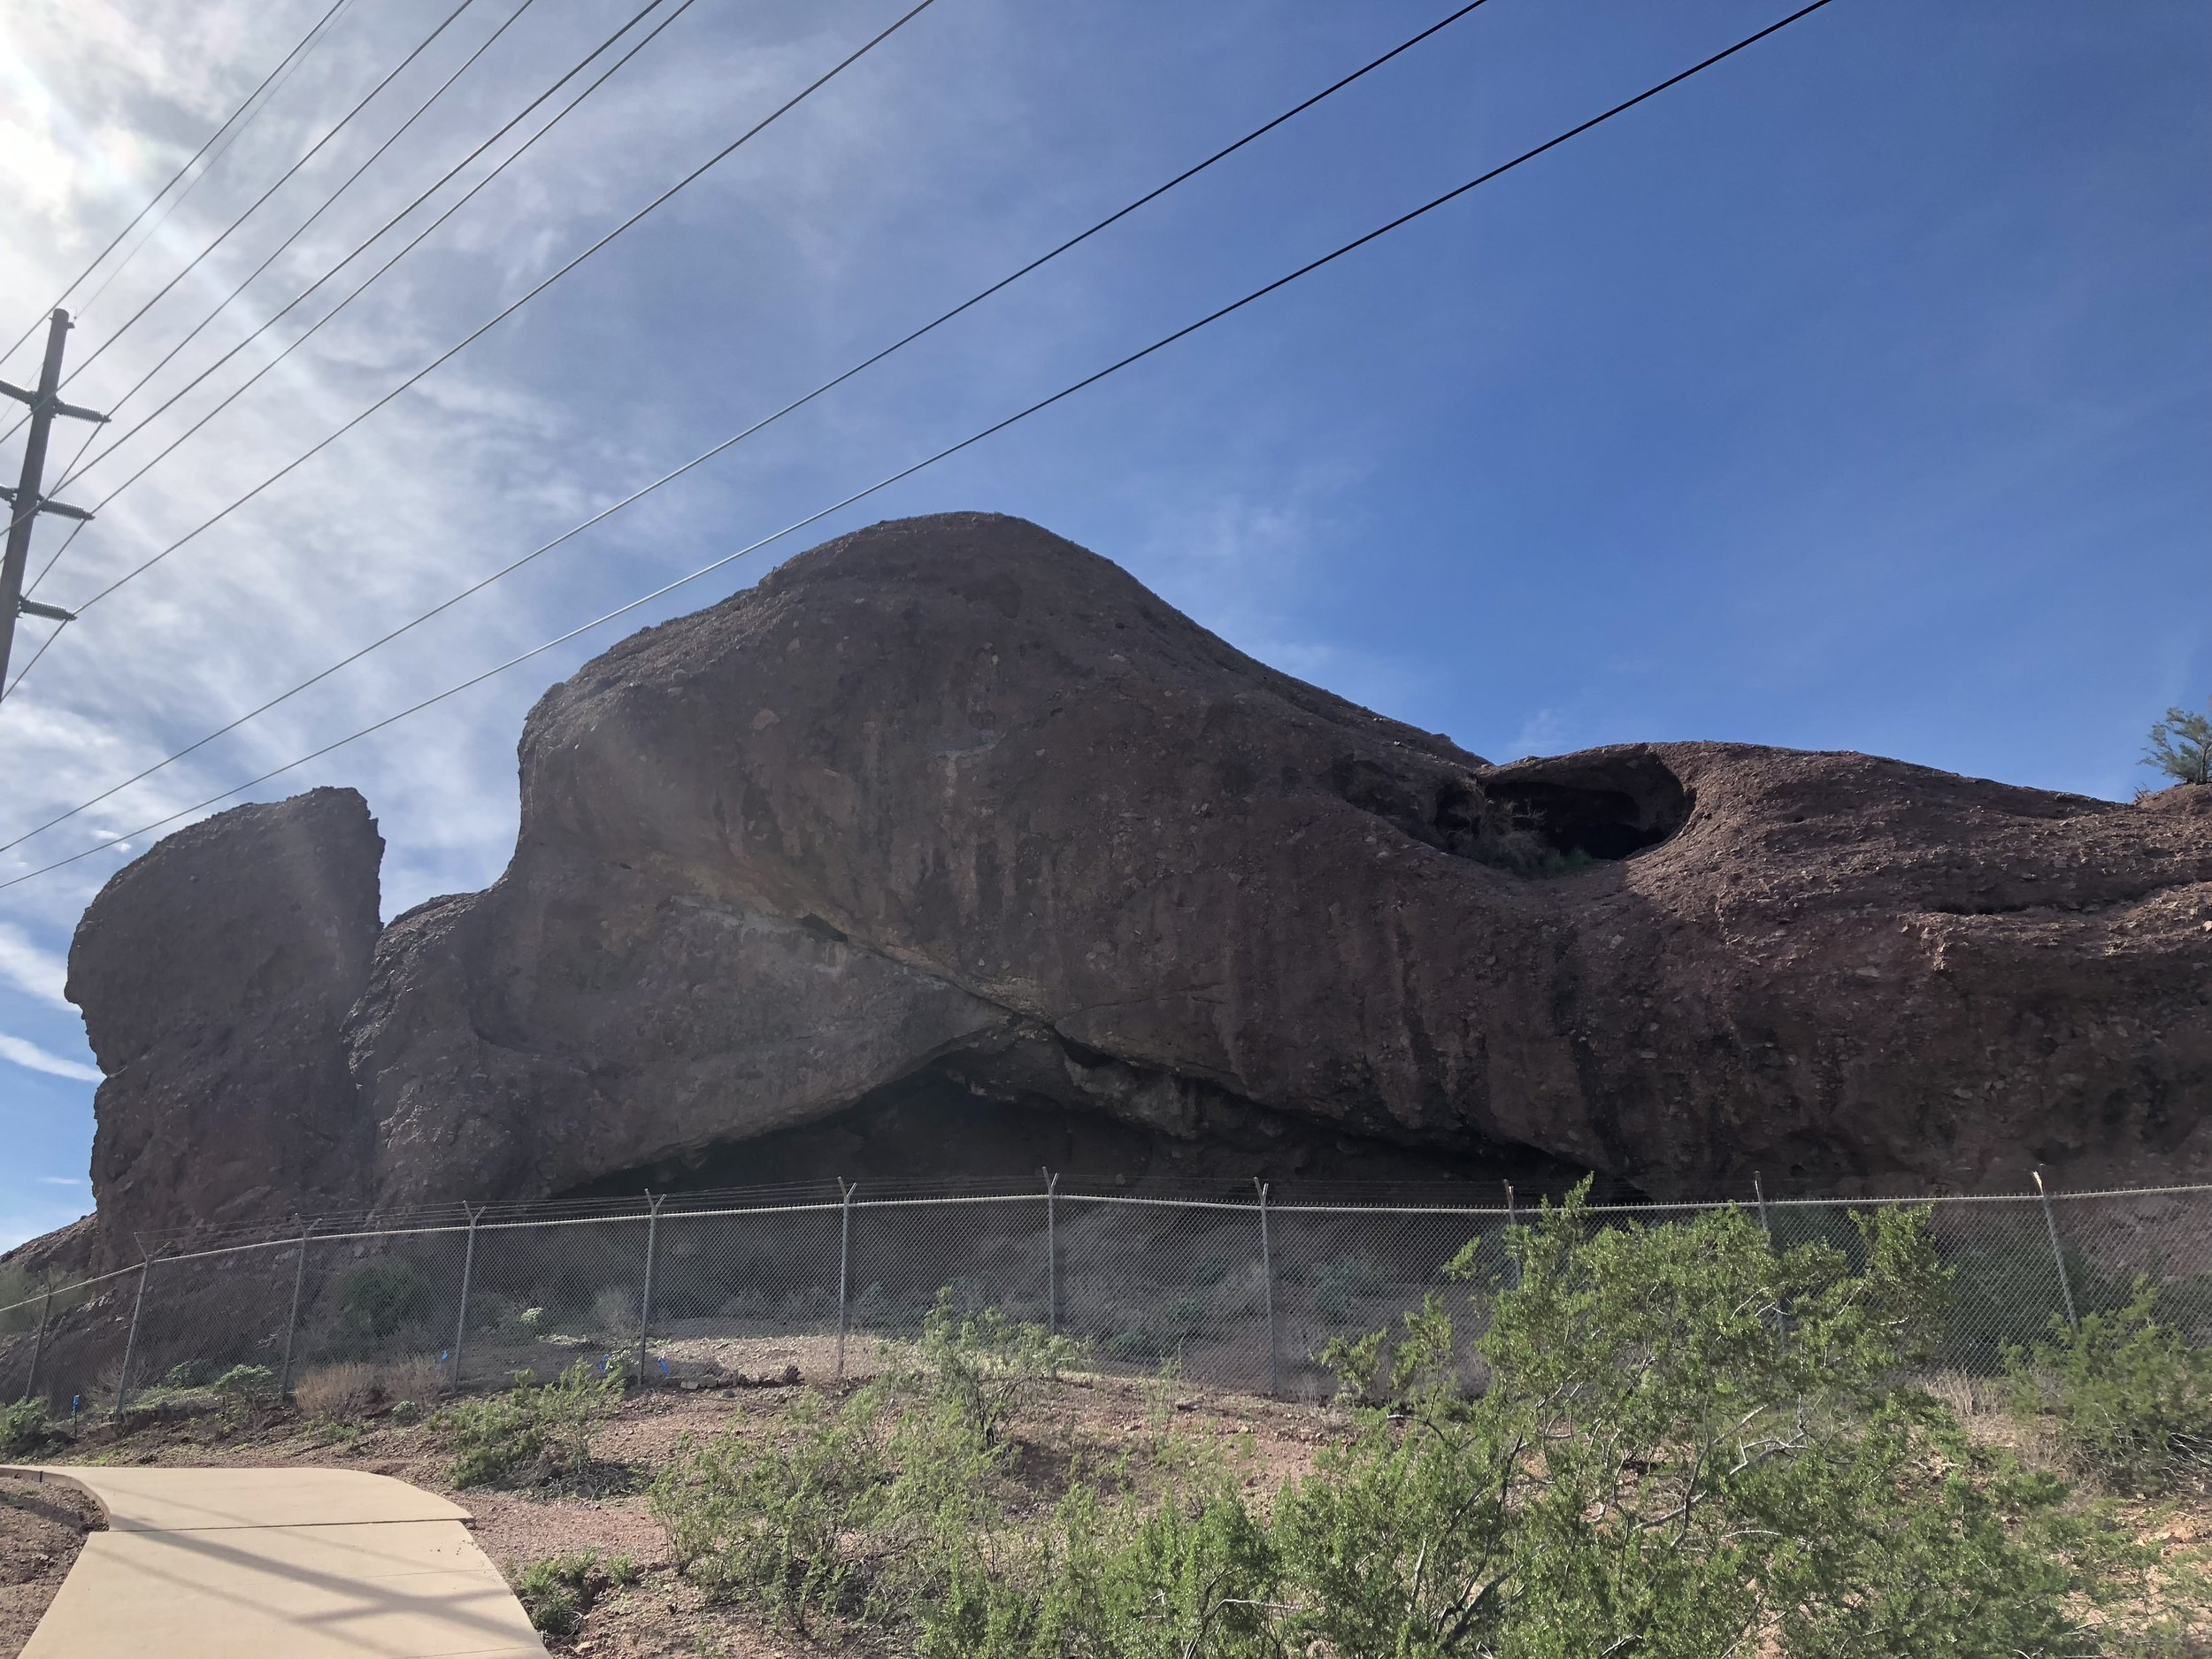 Cool rocks in the Tempe Botanical Garden (ignore the fence and telephone wires).